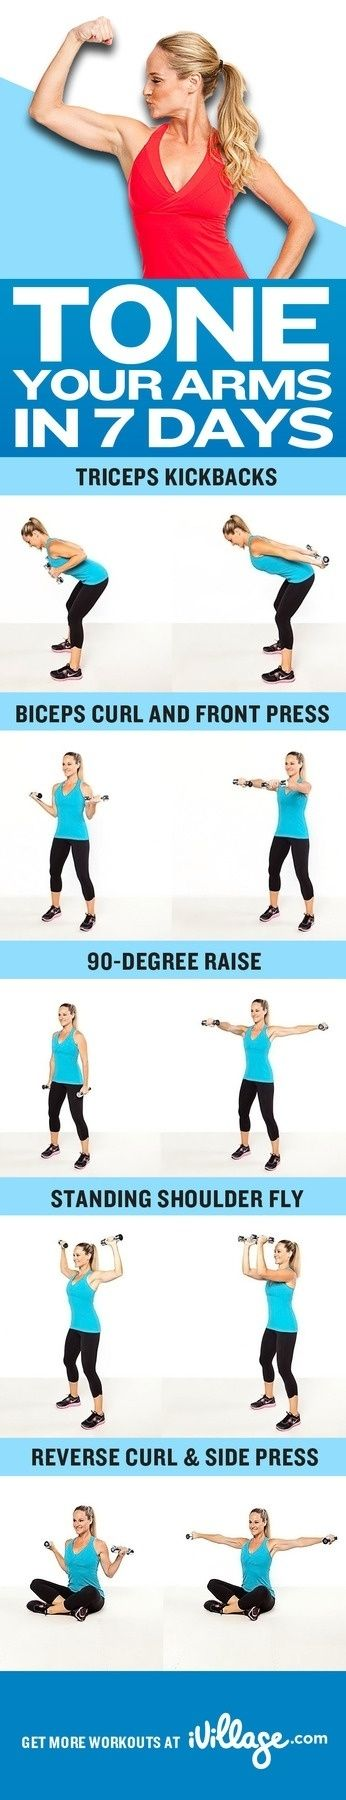 Great Arm Toning Sequence! Get your arms summer ready, ladies!